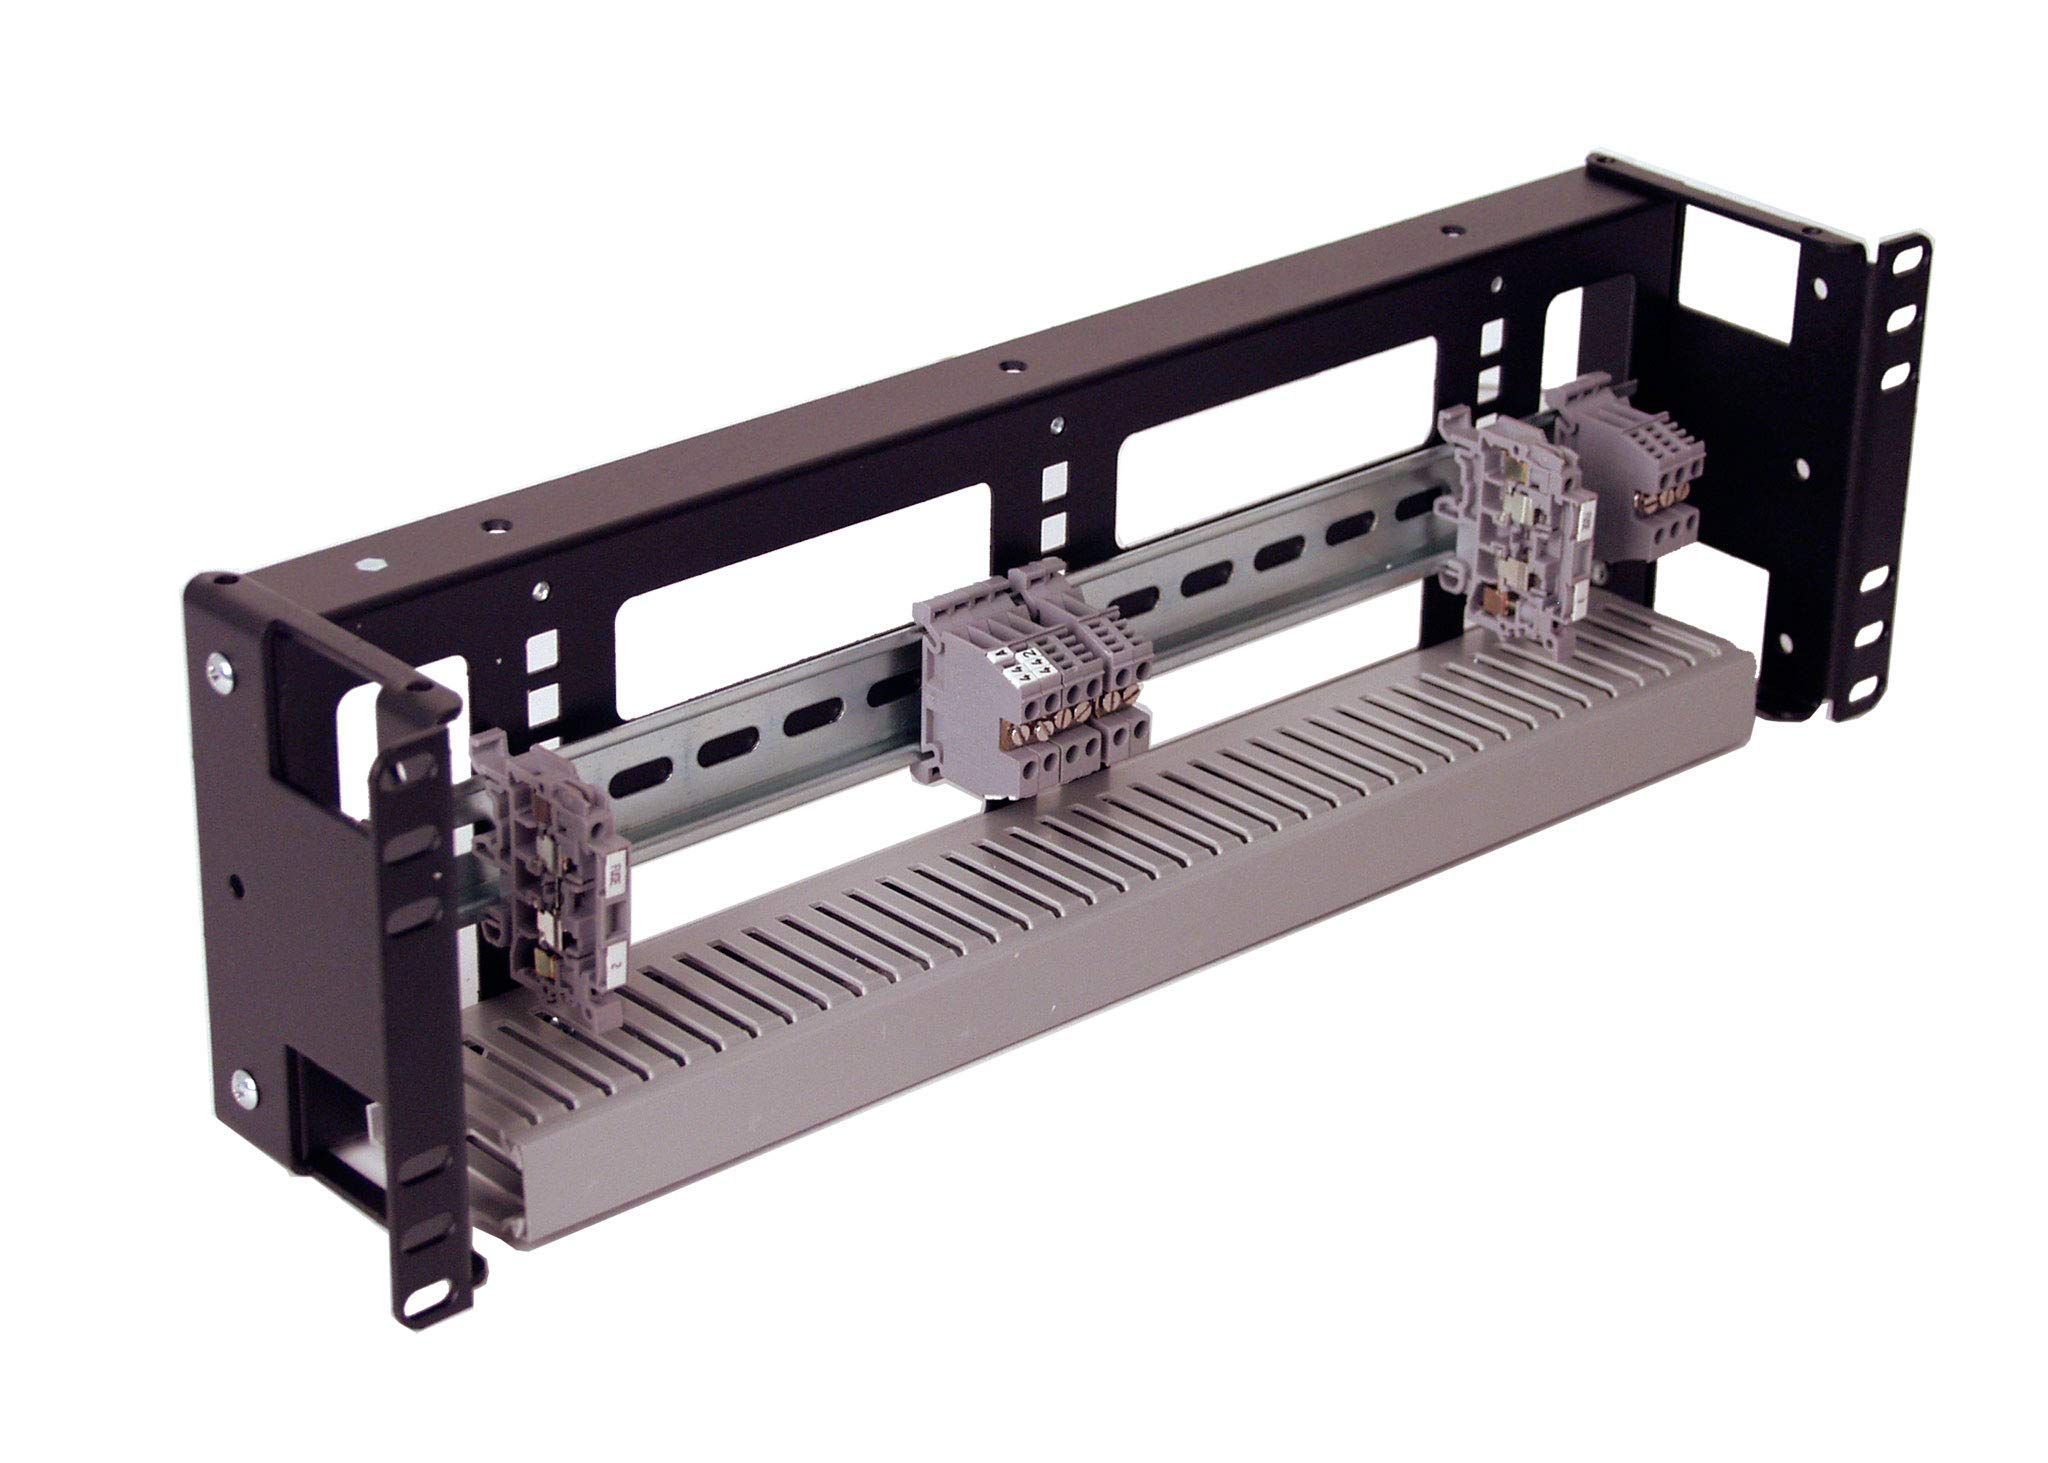 IRP1033D 3U Rackmount 3.78 inch Low Profile DIN Rail Panel for Industrial Standard EIA-310 19 inch 2-Post Relay Rack or 4-Post Server Rack